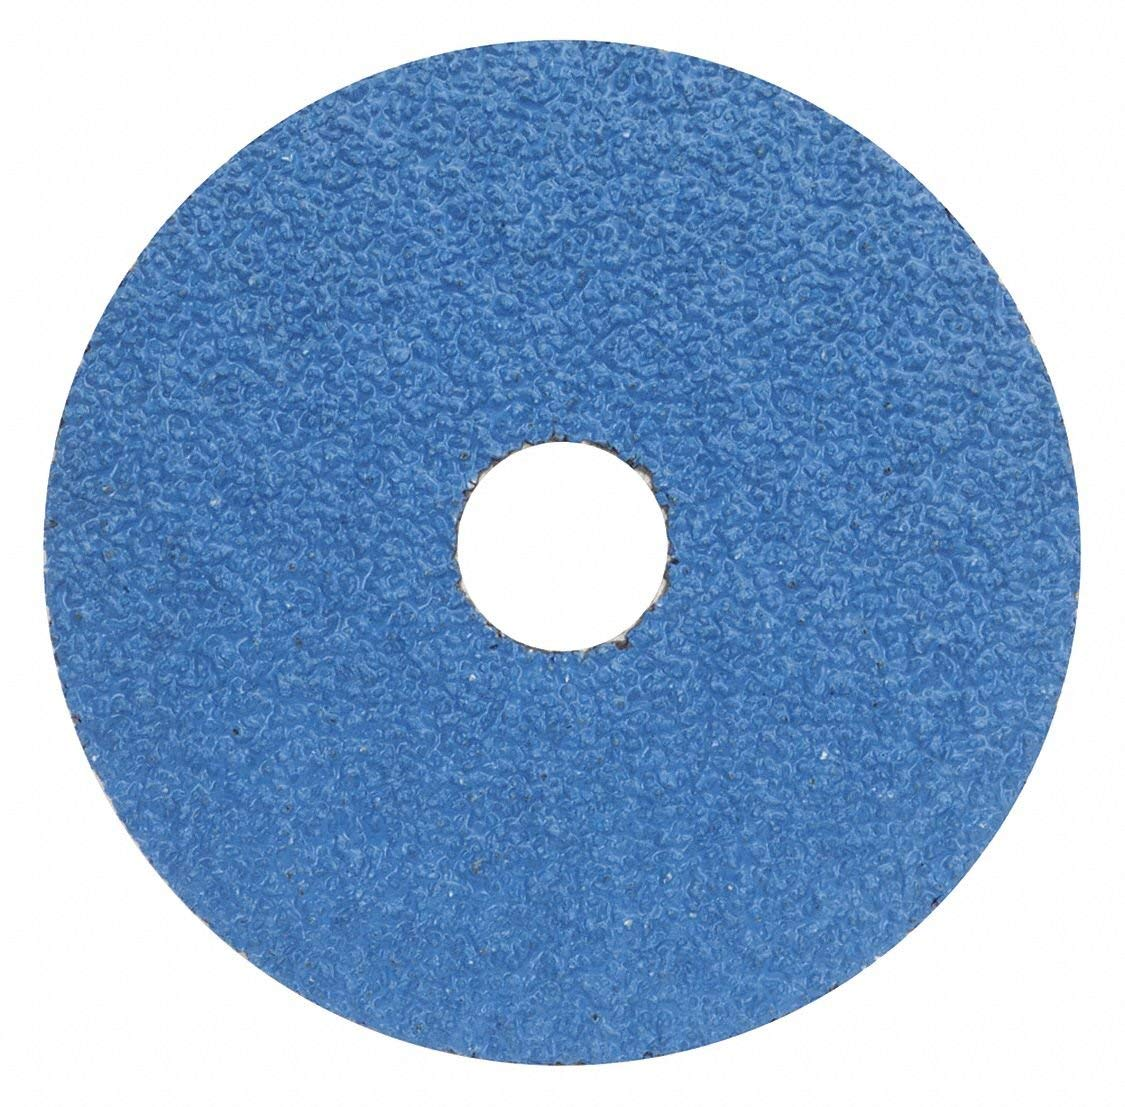 "4-1/2"" Coated Fiber Disc, 7/8"" Mounting Hole Size, Coarse, 50 Grit Zirconia Alumina, 25 PK - pkg. of 25"